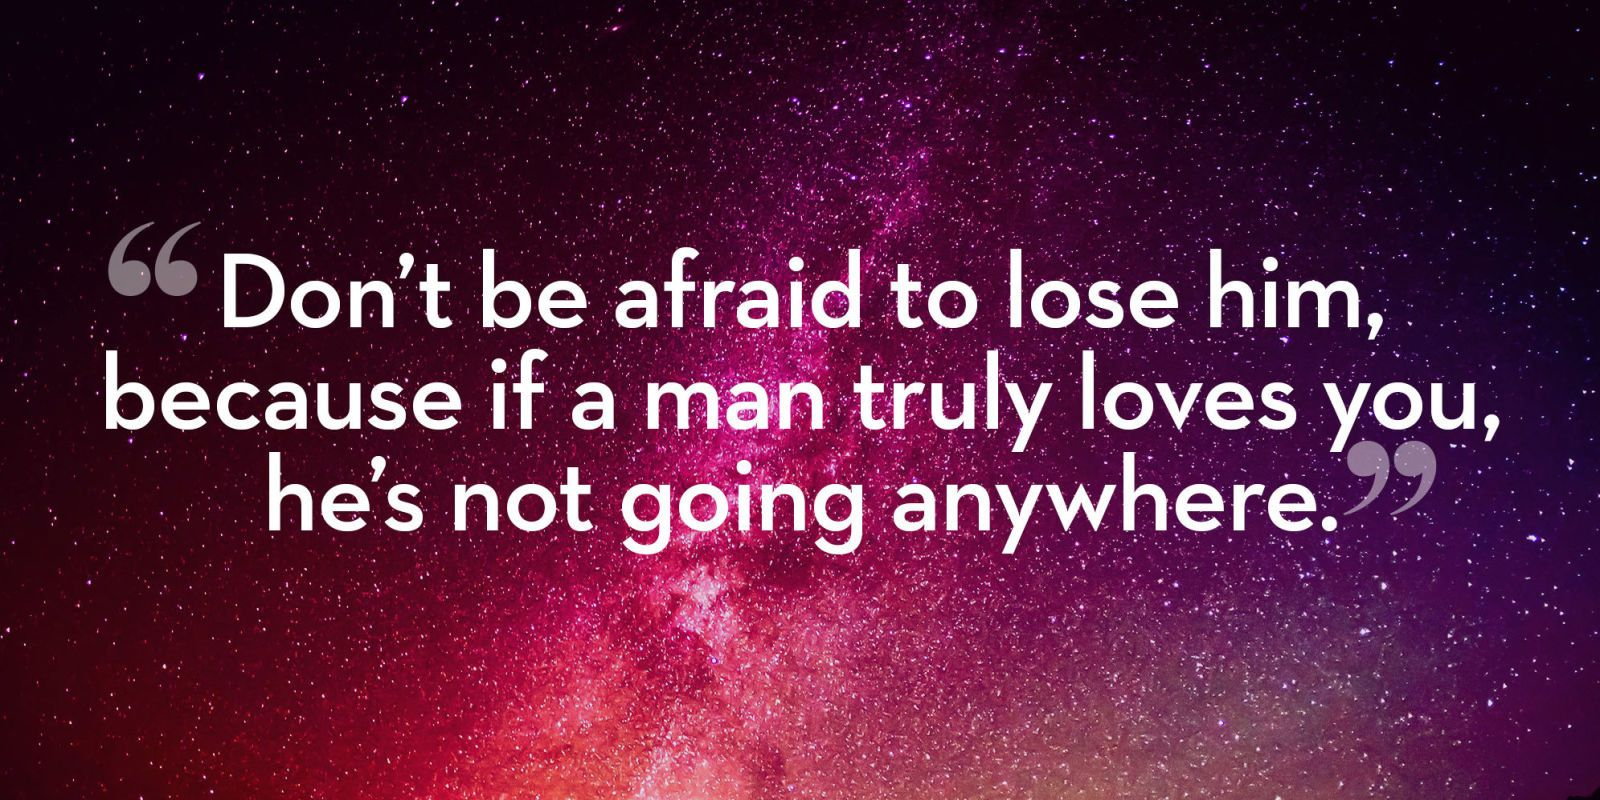 Relationship advice dating a divorced man relationship